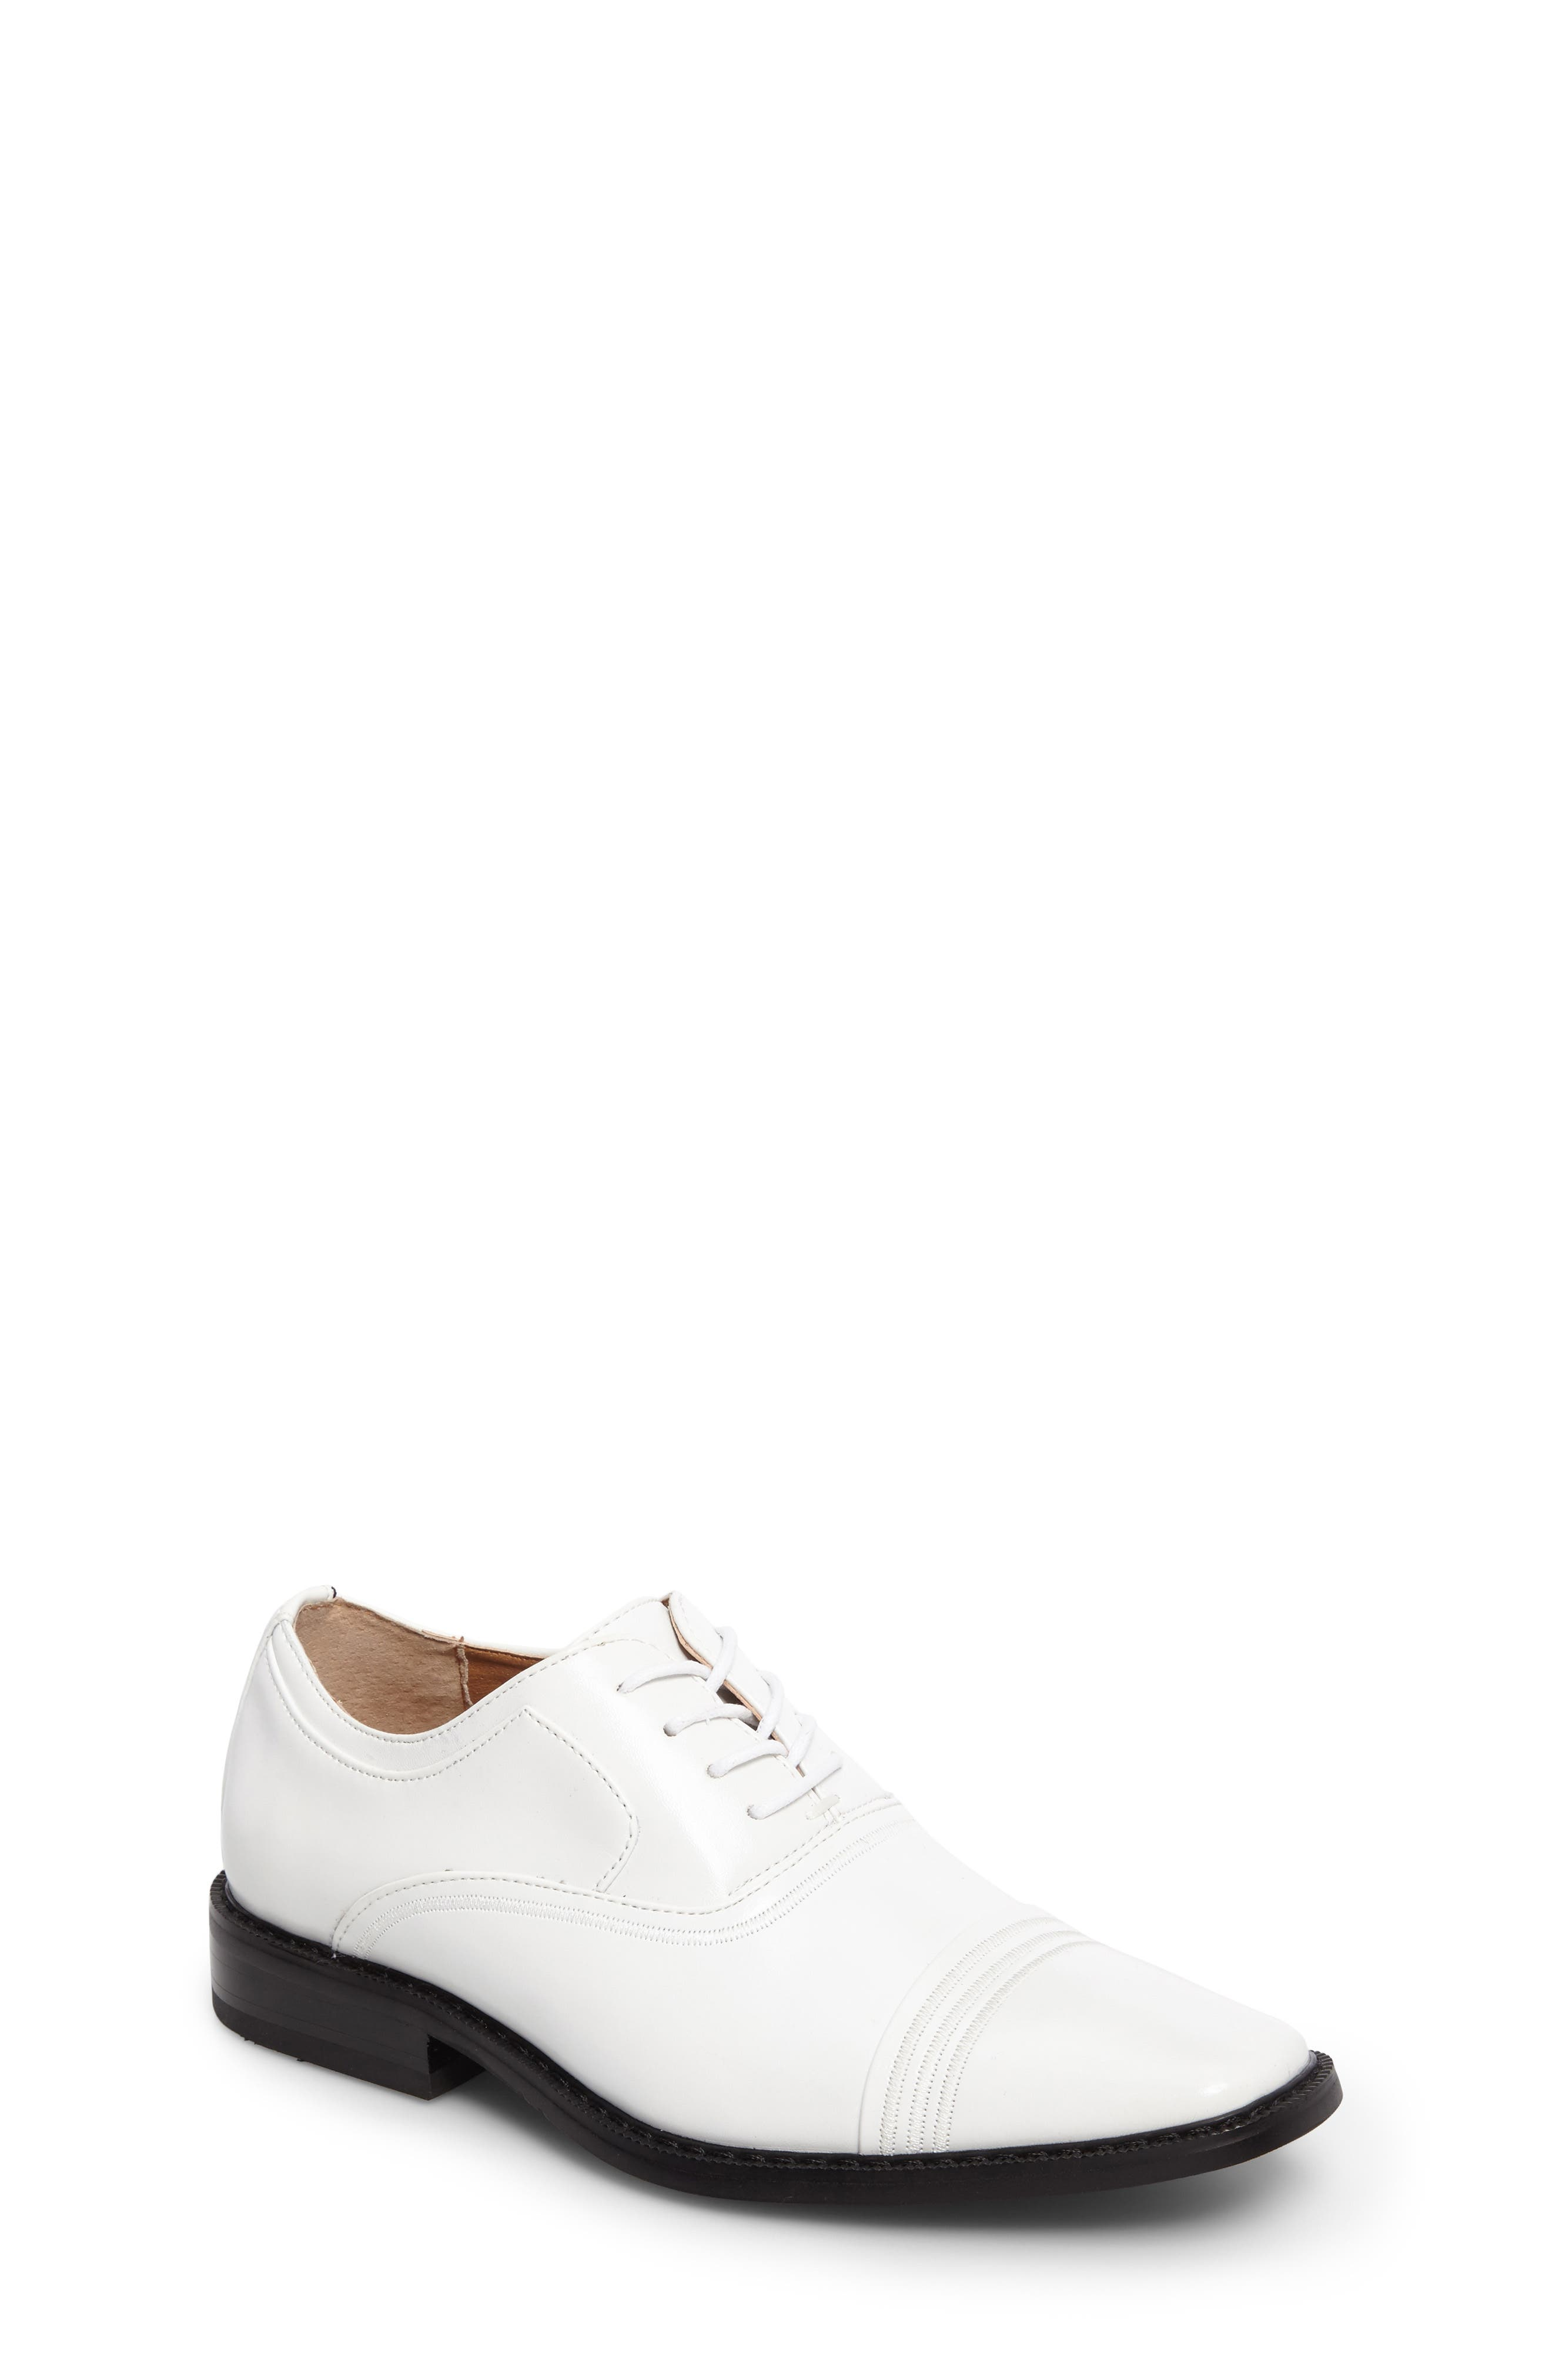 Stacy Adams Bingham Cap Toe Oxford (Toddler, Little Kid & Big Kid)